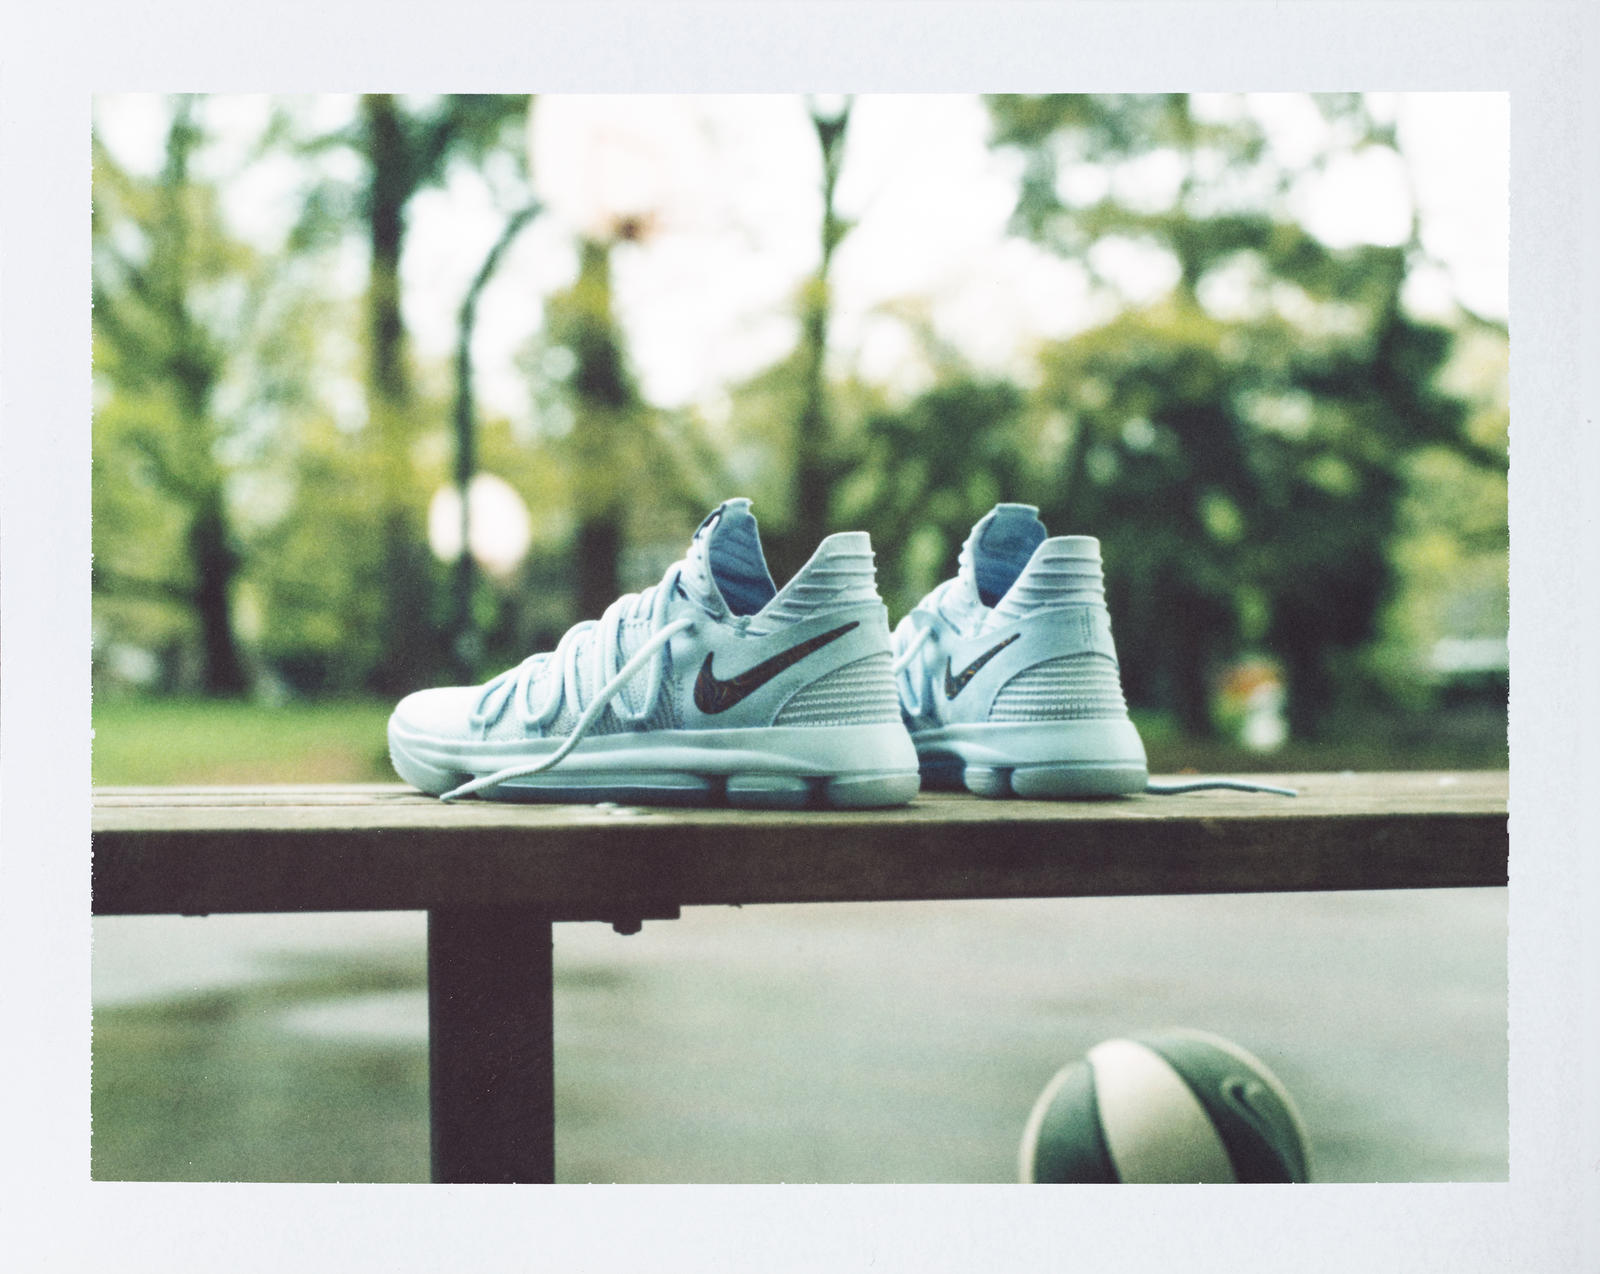 size 40 10dcb 238a9 KD10: More than meets the eye – SLAMonline Philippines